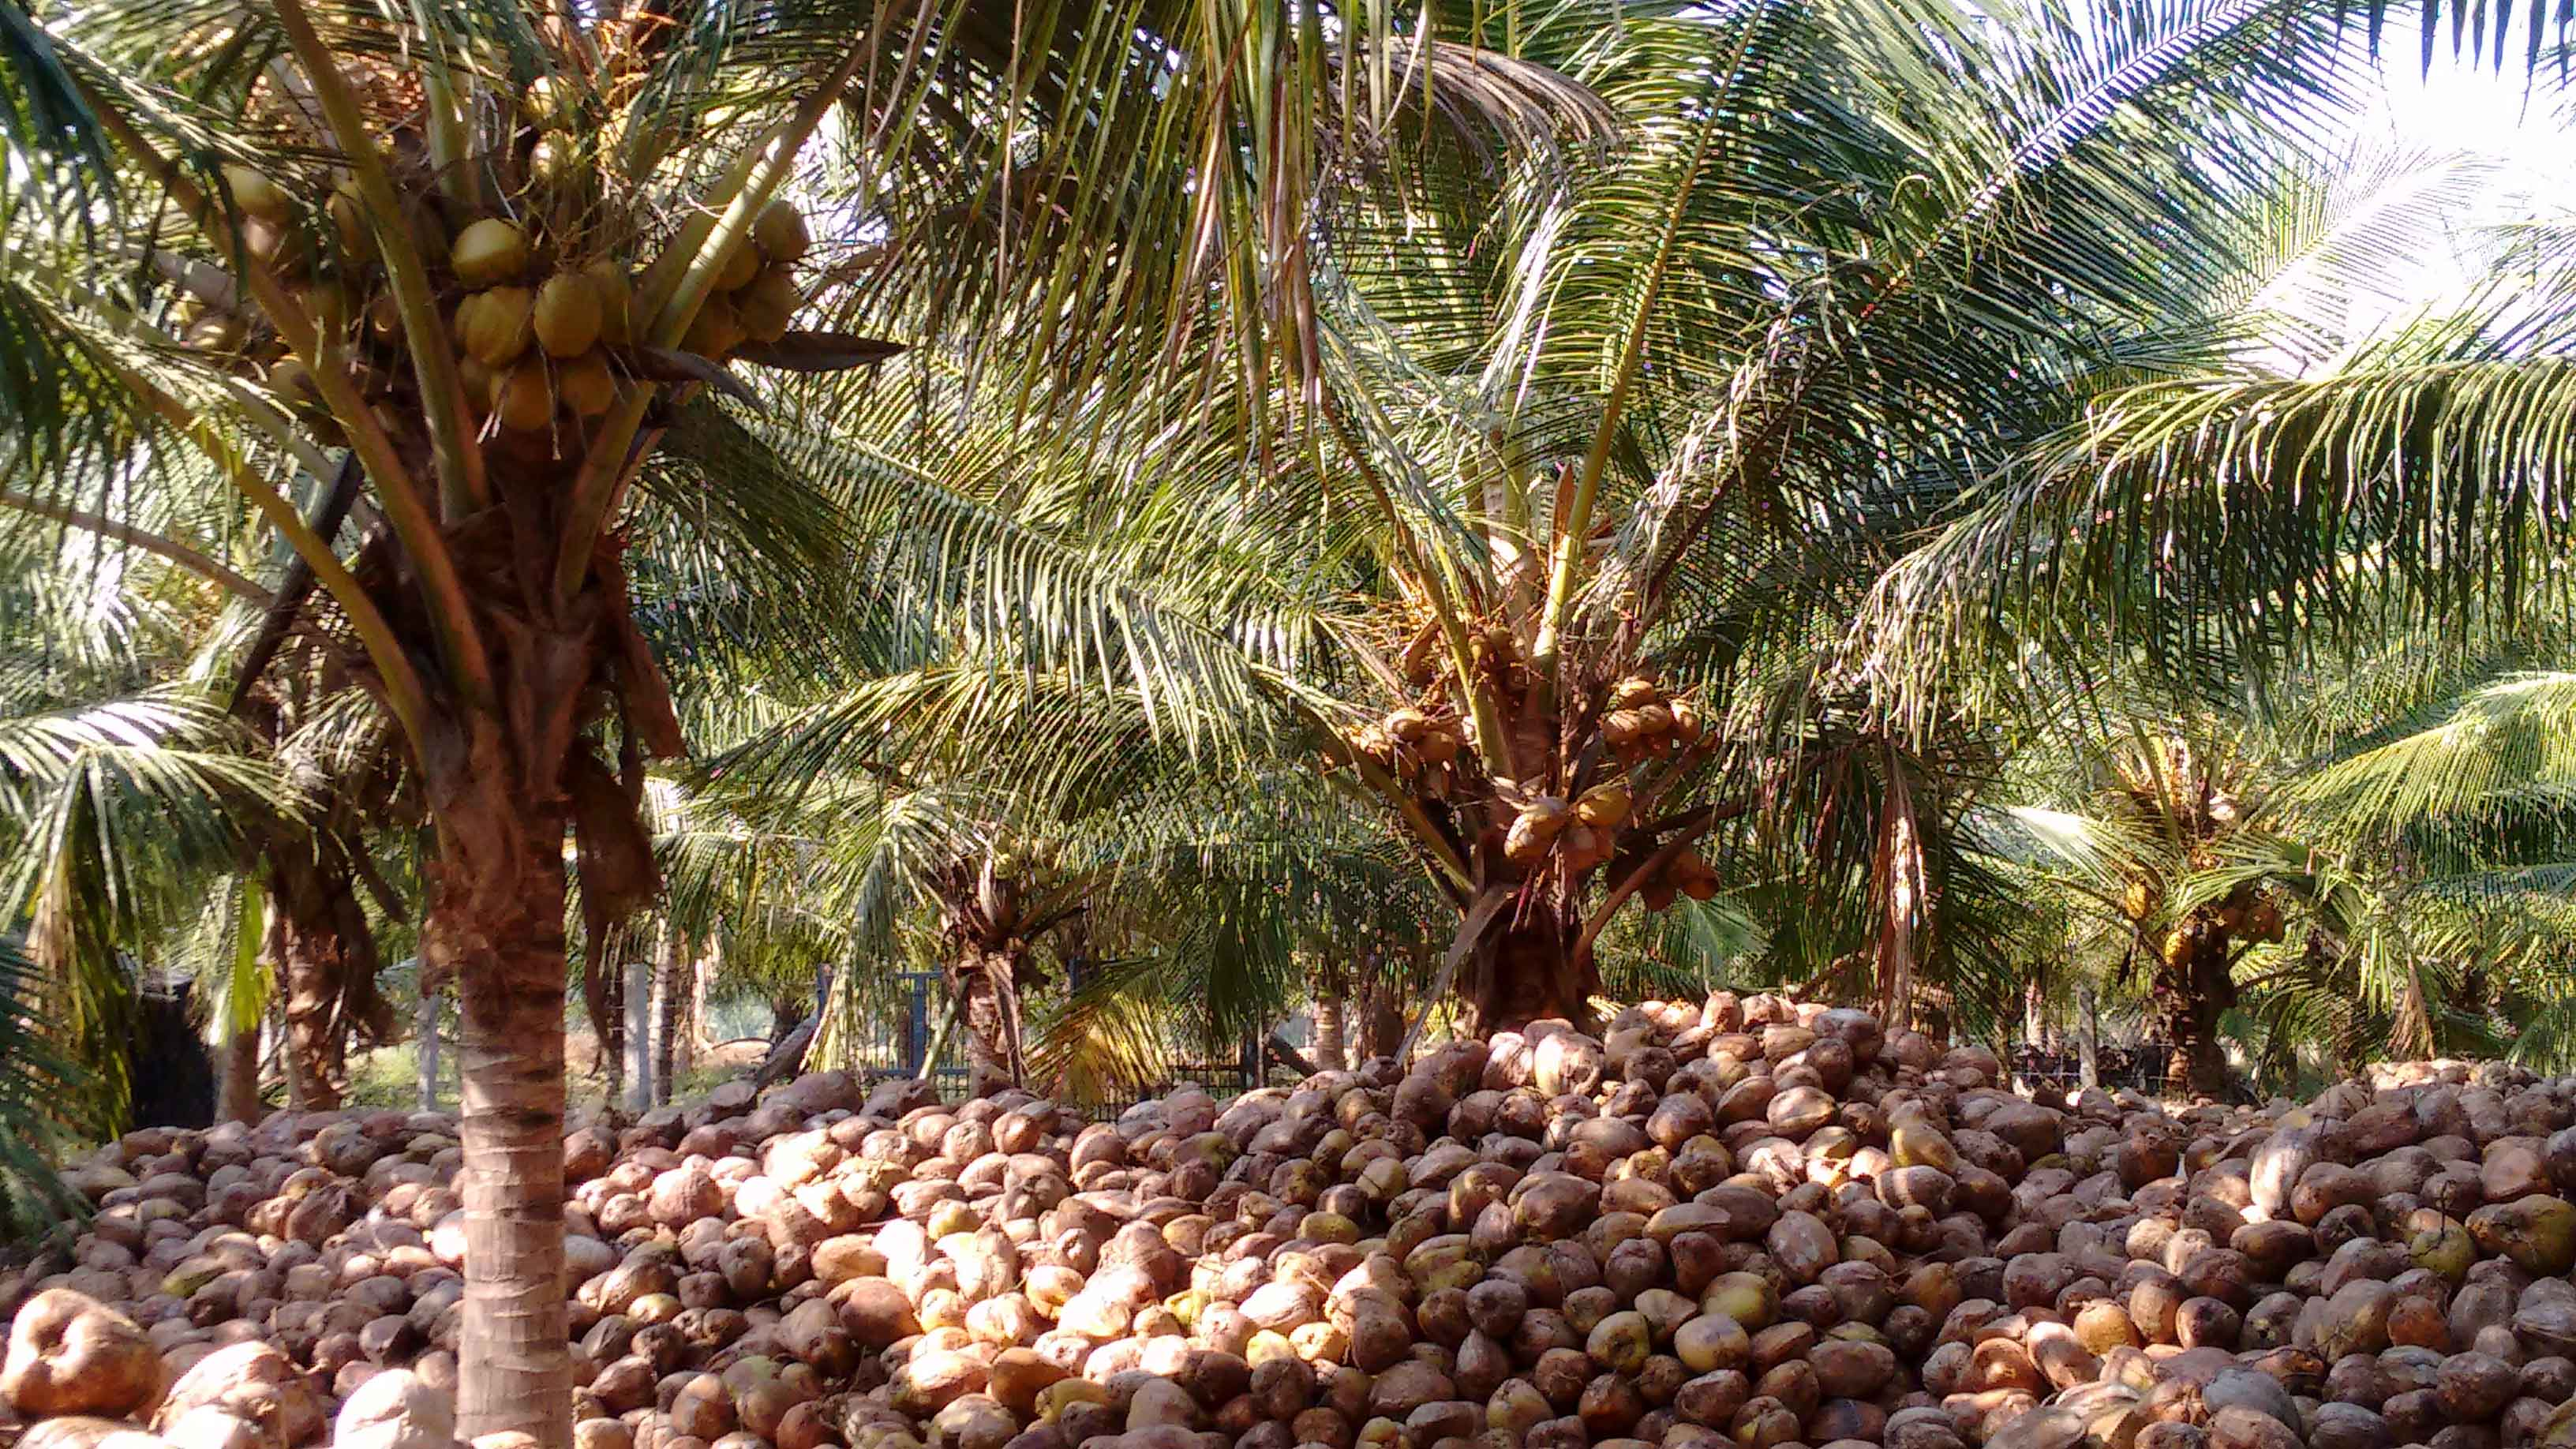 Fresh & Dry Pollachi Coconut Exporters & Suppliers in India